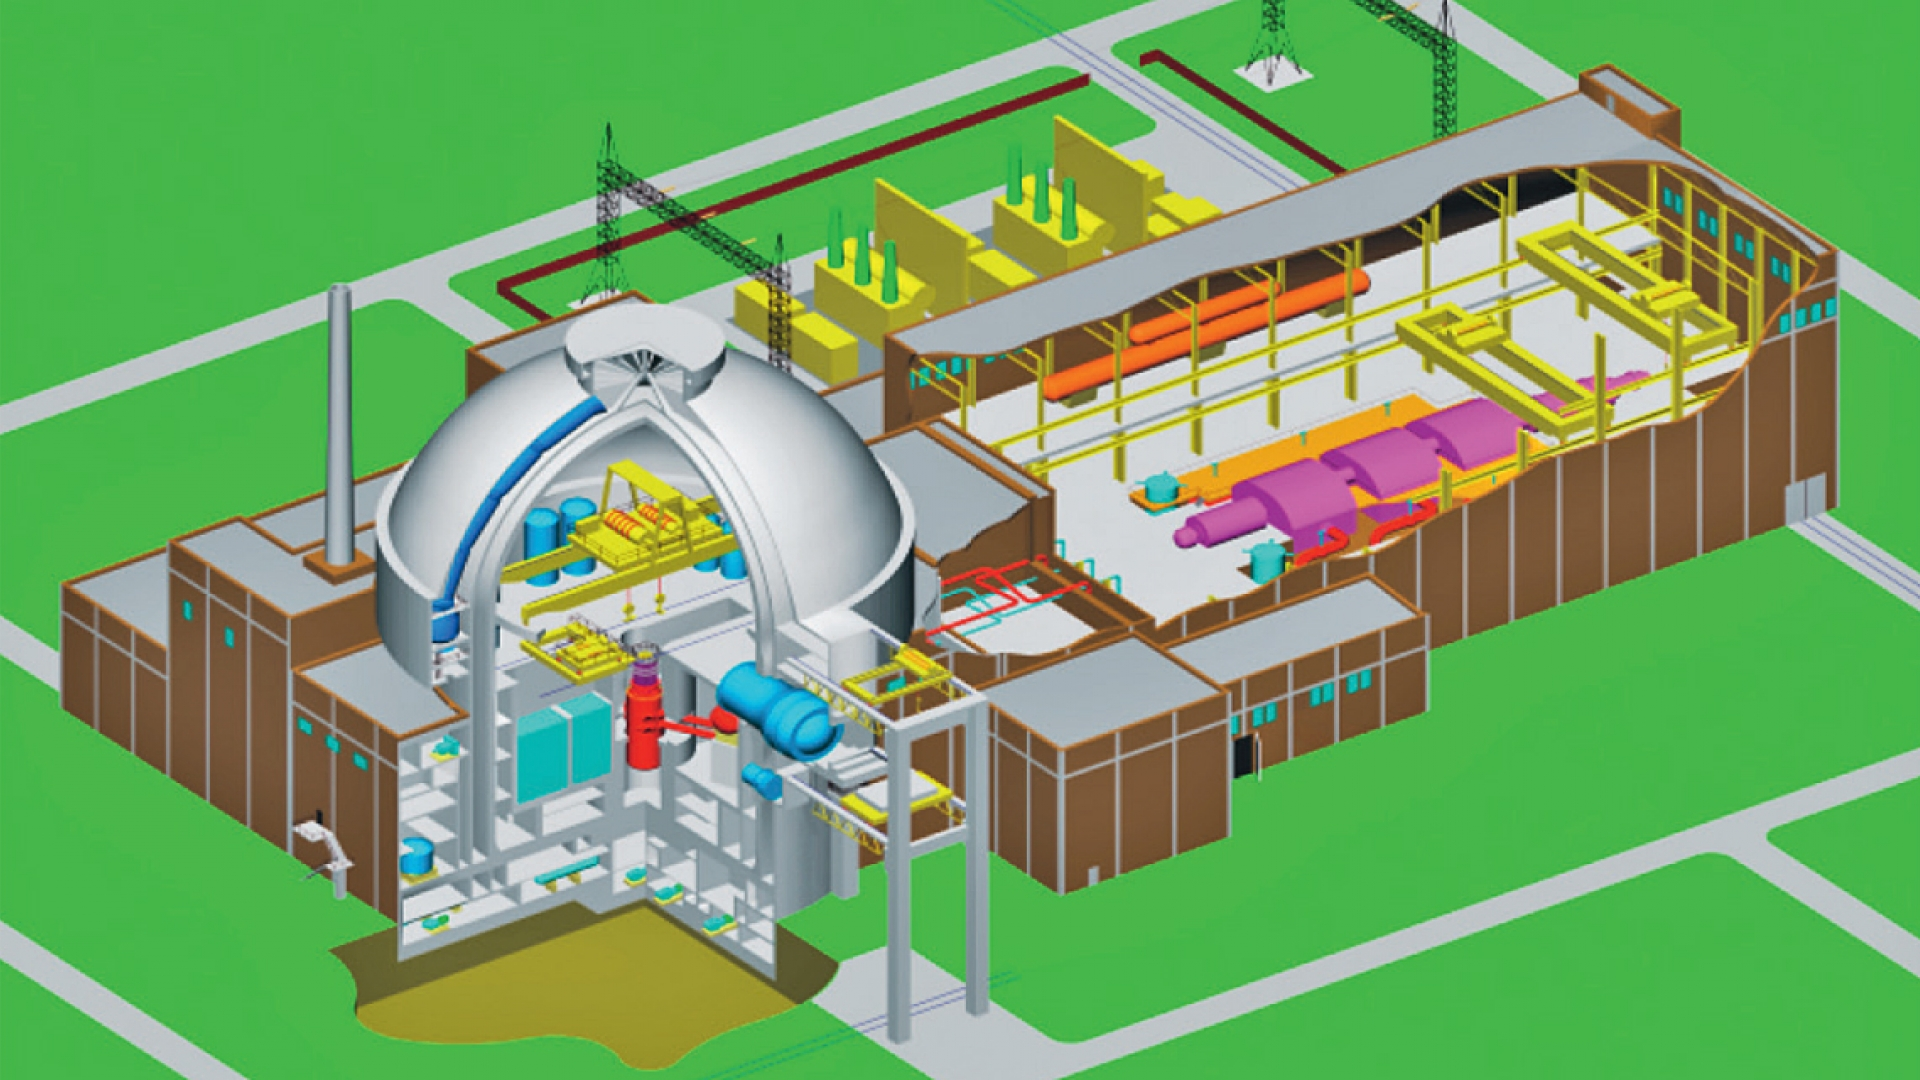 Iaea Impact Towards Safe And Secure Use Of Nuclear Energy In Turkey Power Plant Layout Operation Wwer 1200 Pressurized Water Reactor